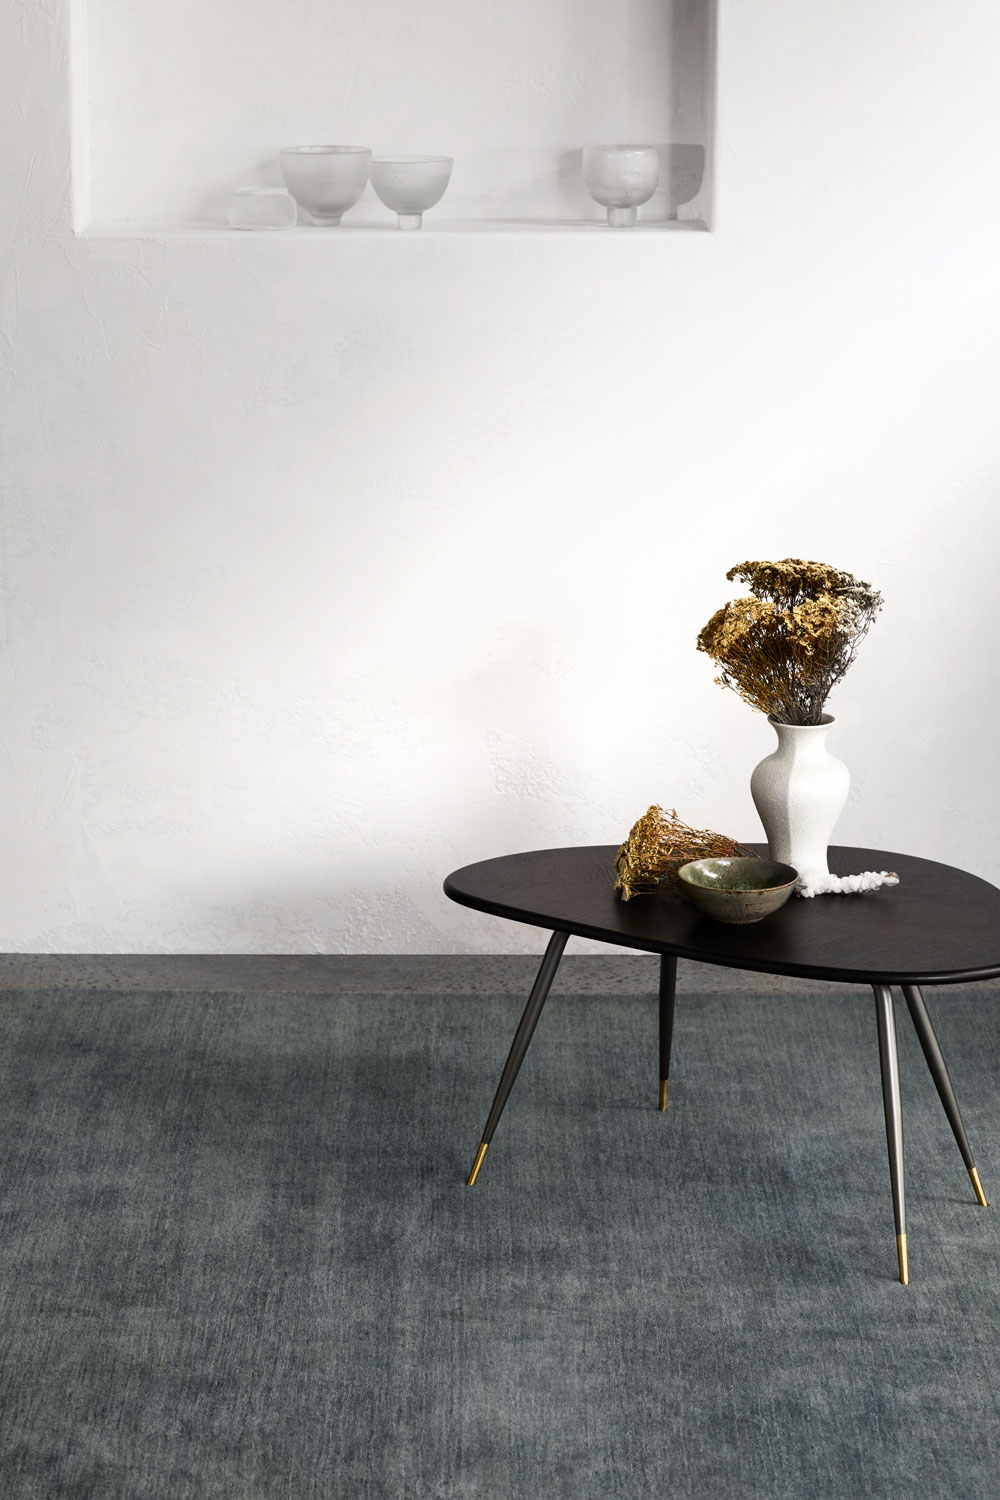 Armadillo-&-Co_Agra-Rug_(Marlin)_Stylist-Credit-Claire-Delmar_Photo-Credit-Sharyn-Cairns_H05_Meanwhile-in-Melbourne.jpg